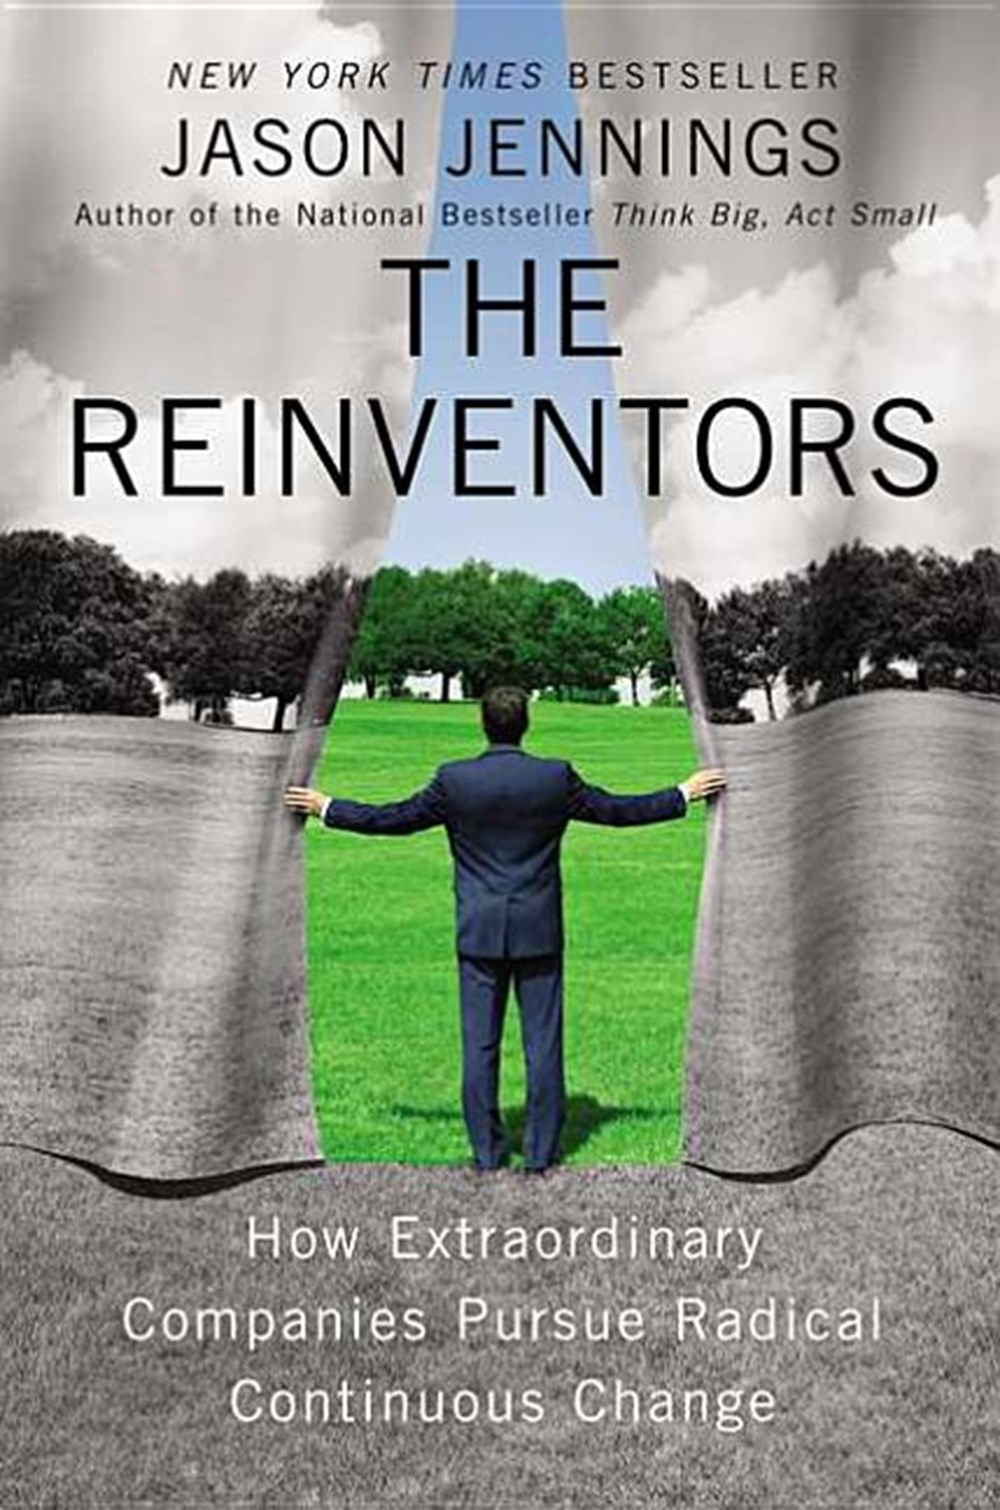 Reinventors How Extraordinary Companies Pursue Radical Continuous Change